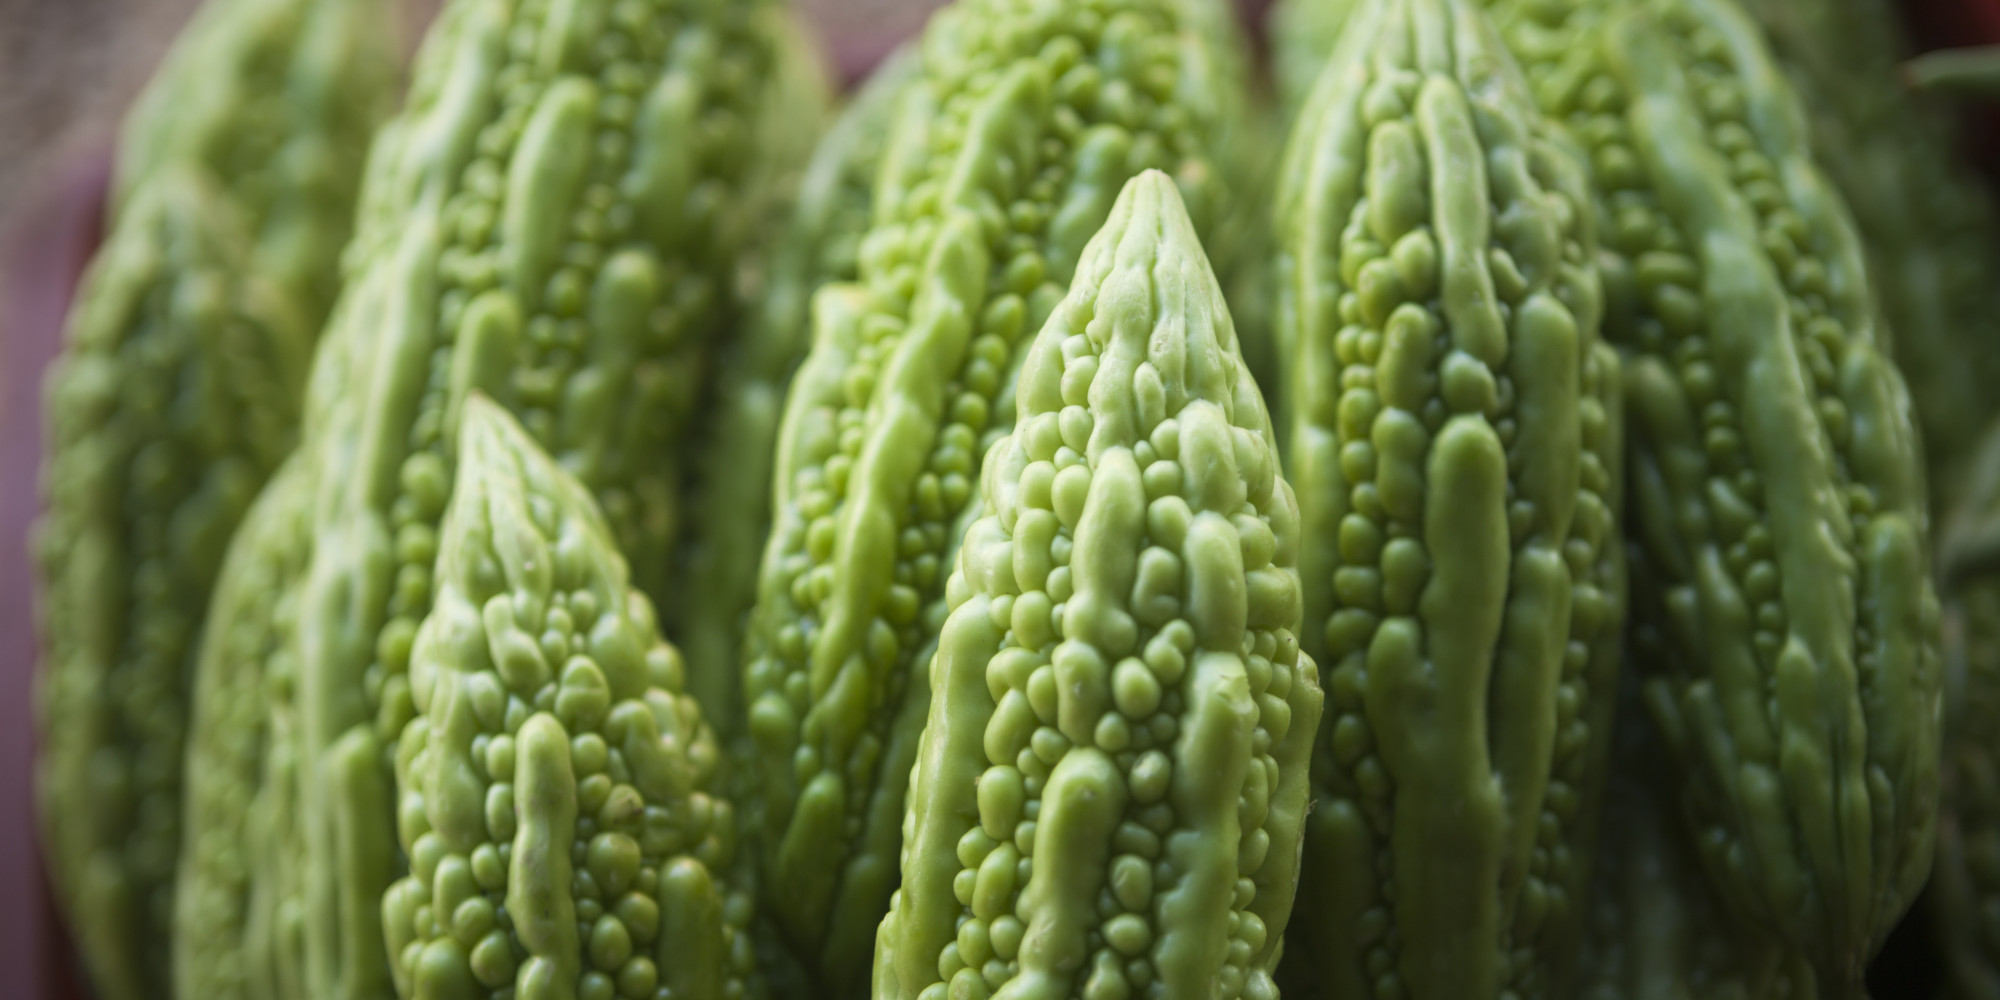 Bitter melon could slow head and neck cancer growth animal study suggests huffpost - Bitter melon culture ...